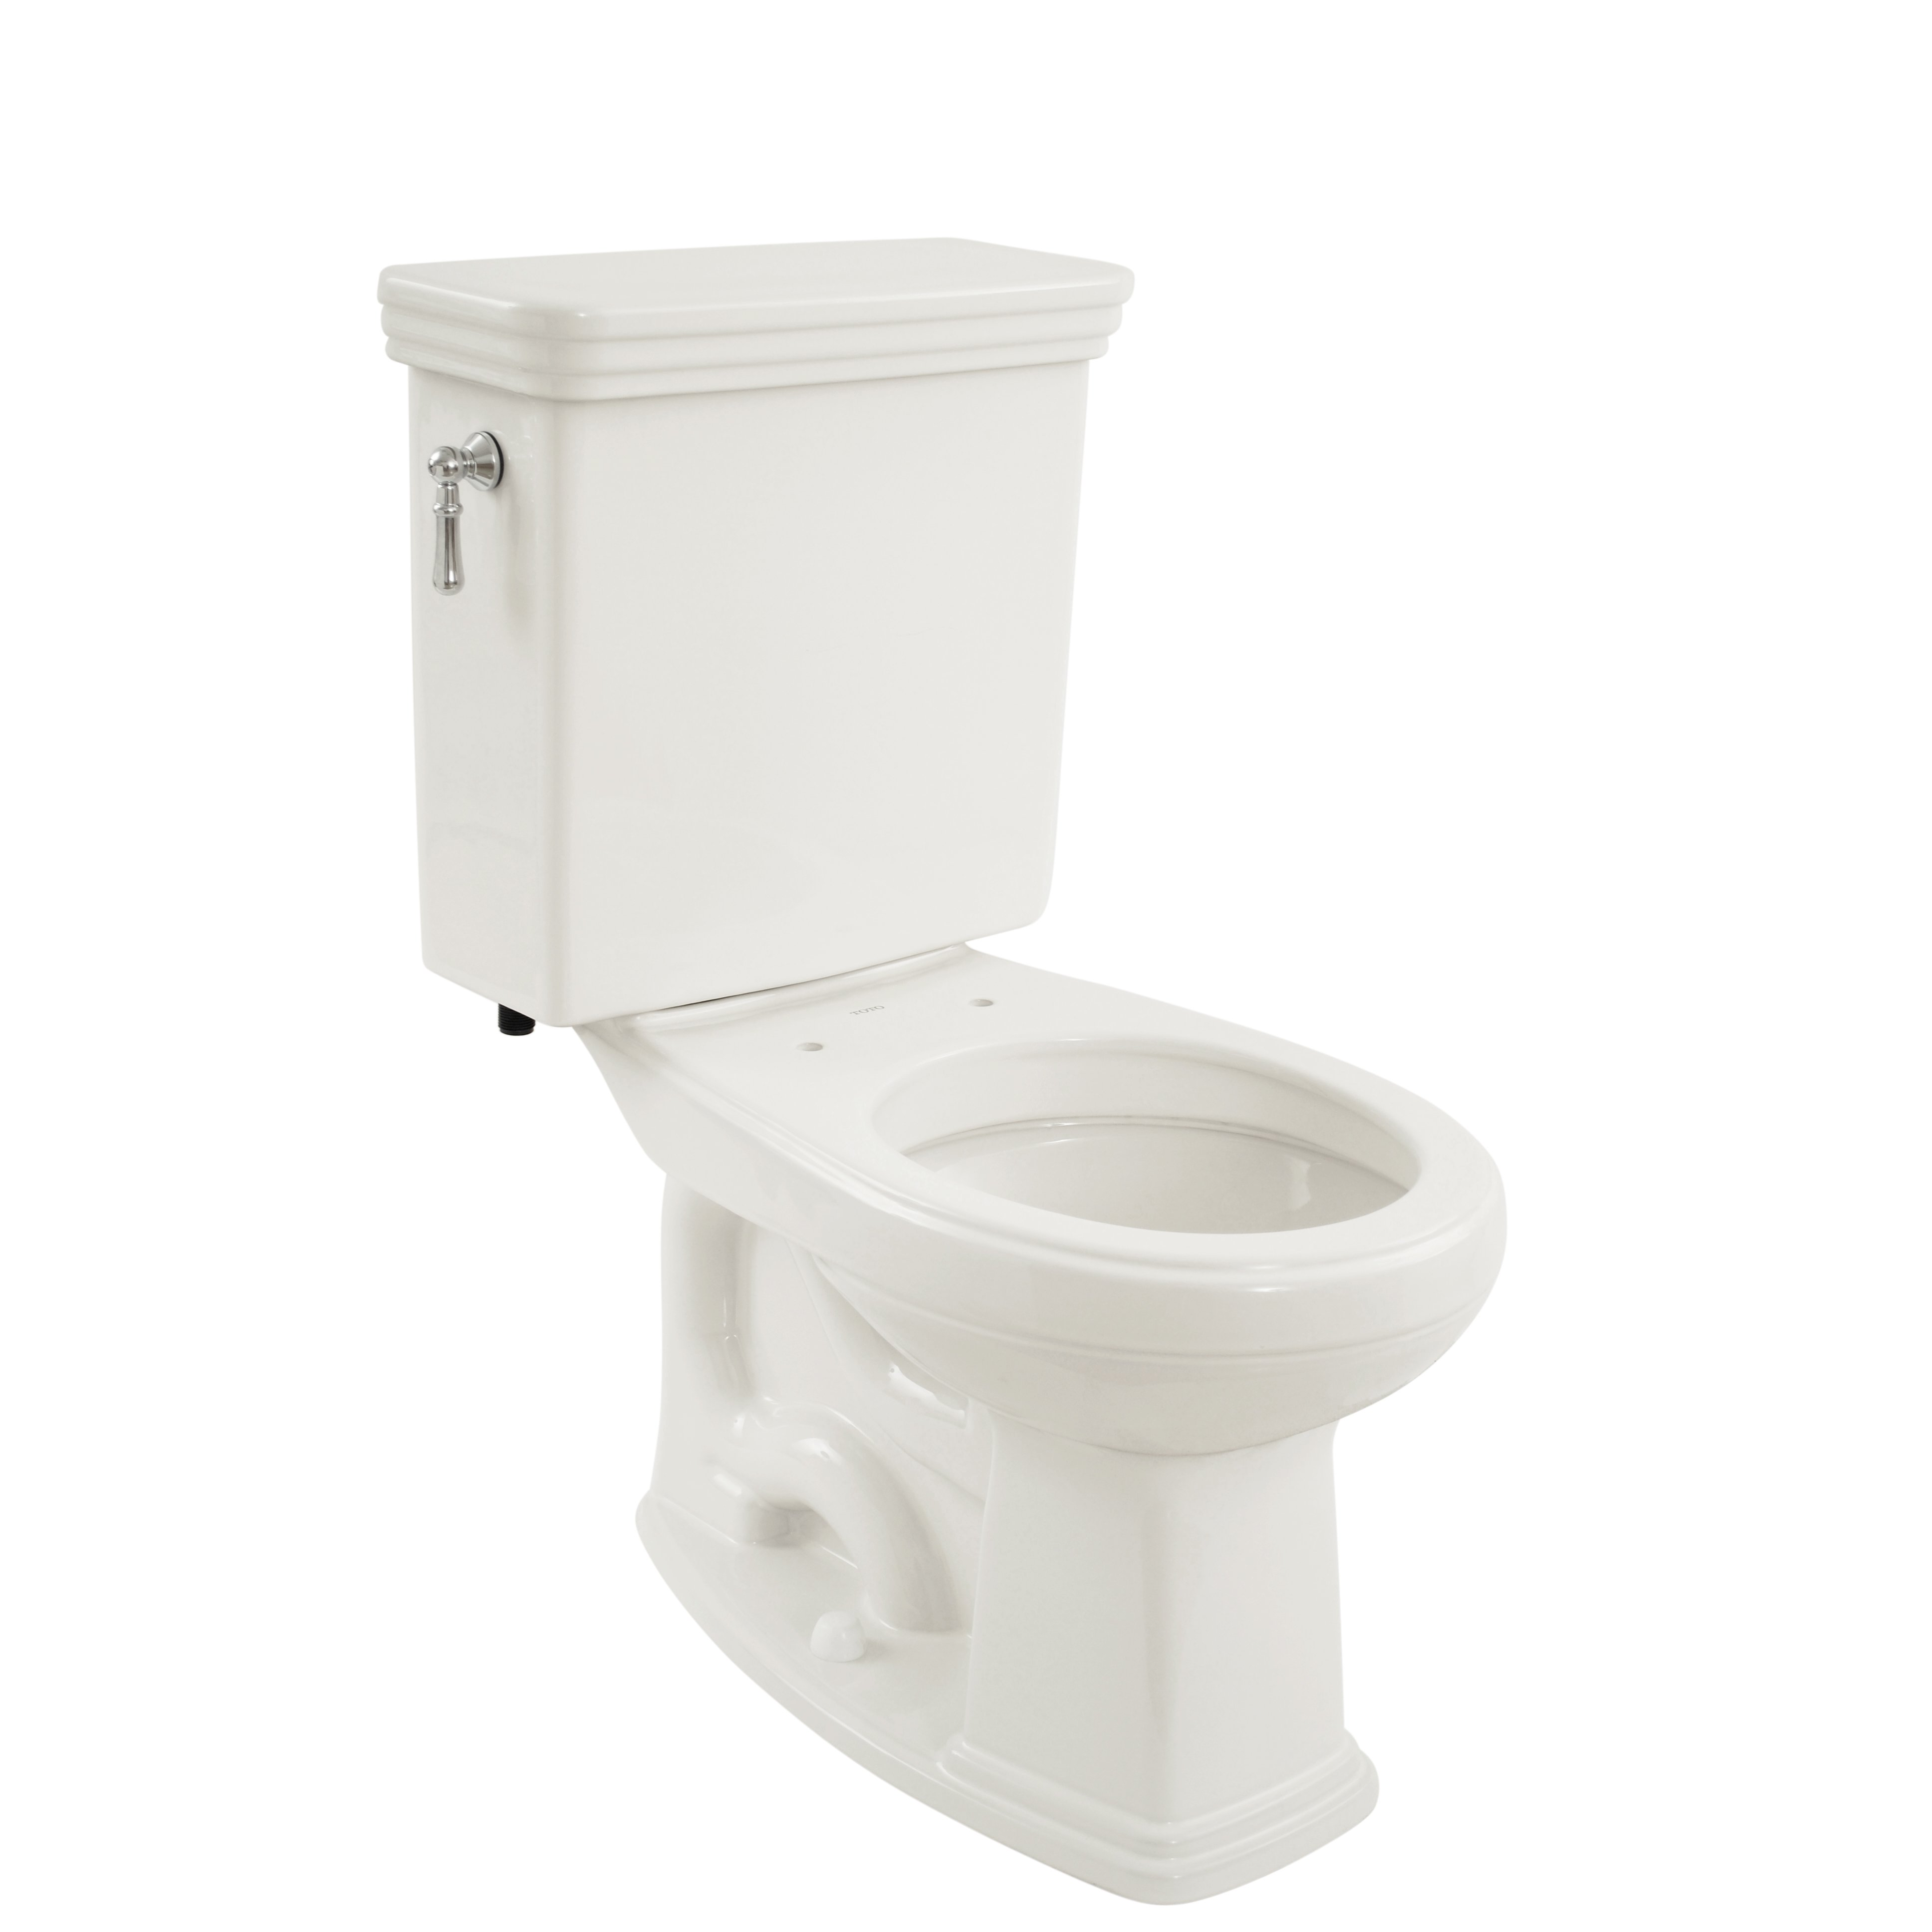 Toto Toilet | How Much Does A Bidet Cost | Bidet Toilet Combo